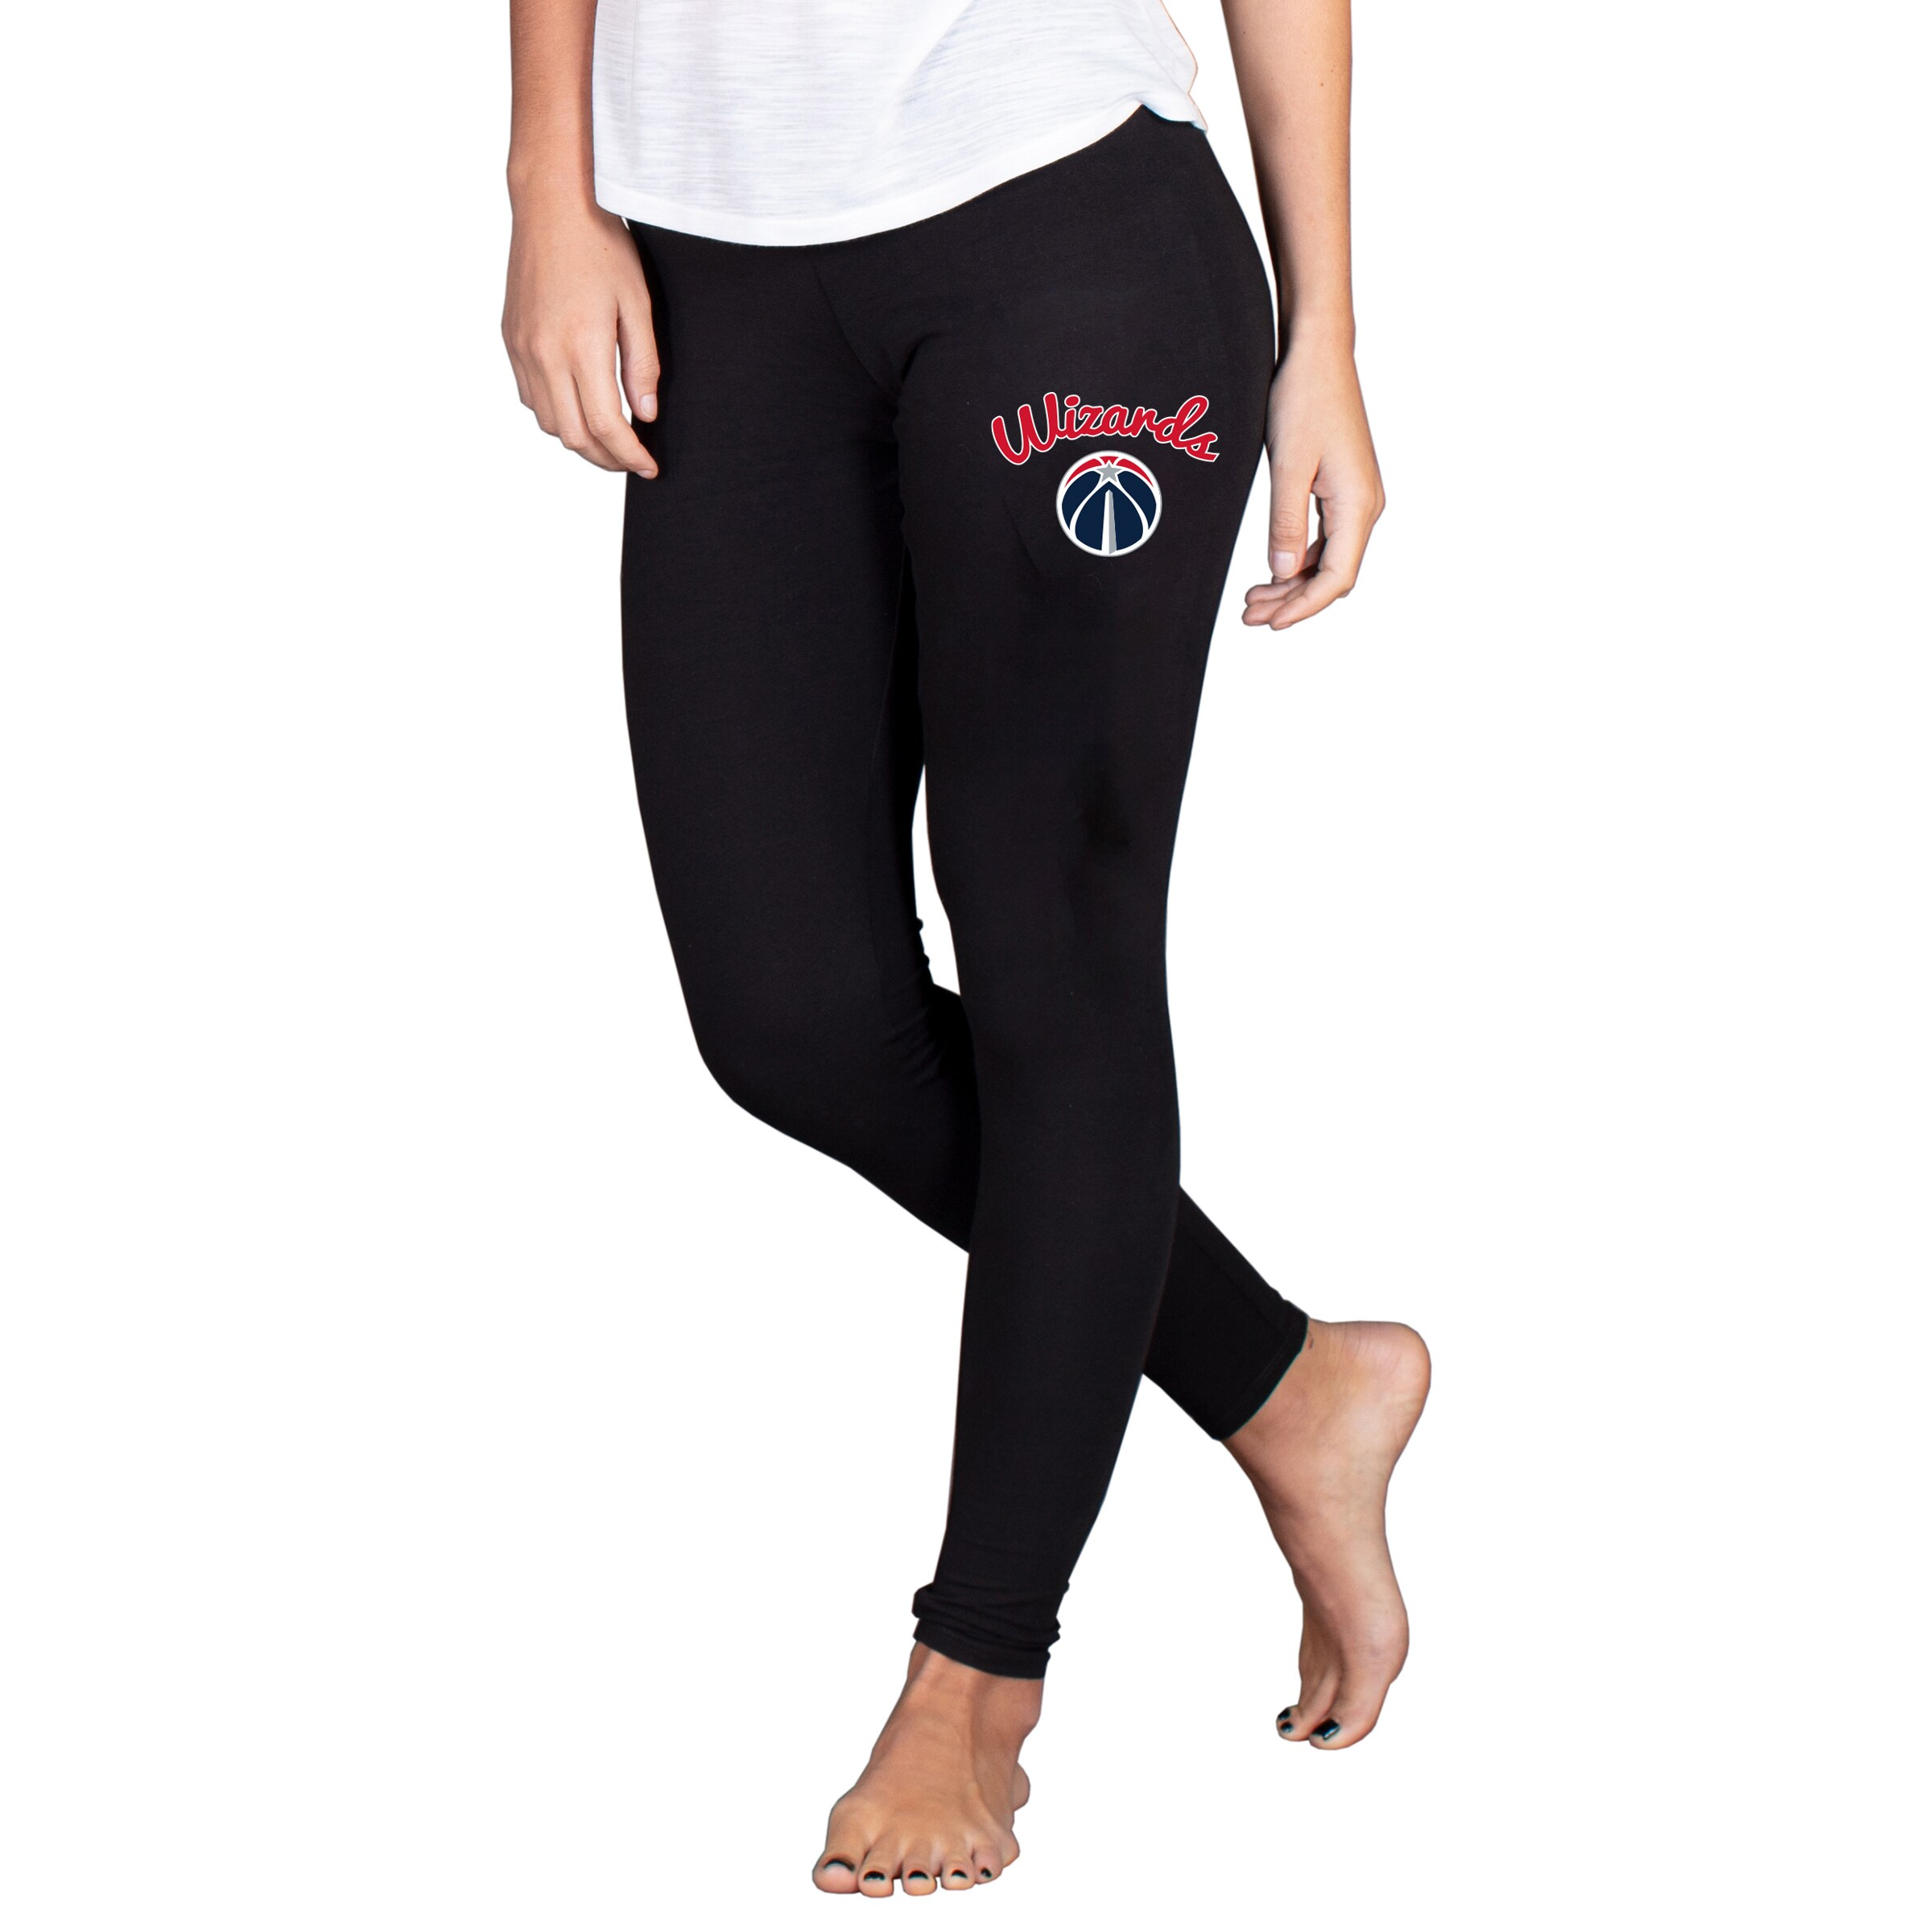 Washington Wizards Concepts Sport Women's Fraction Leggings - Black